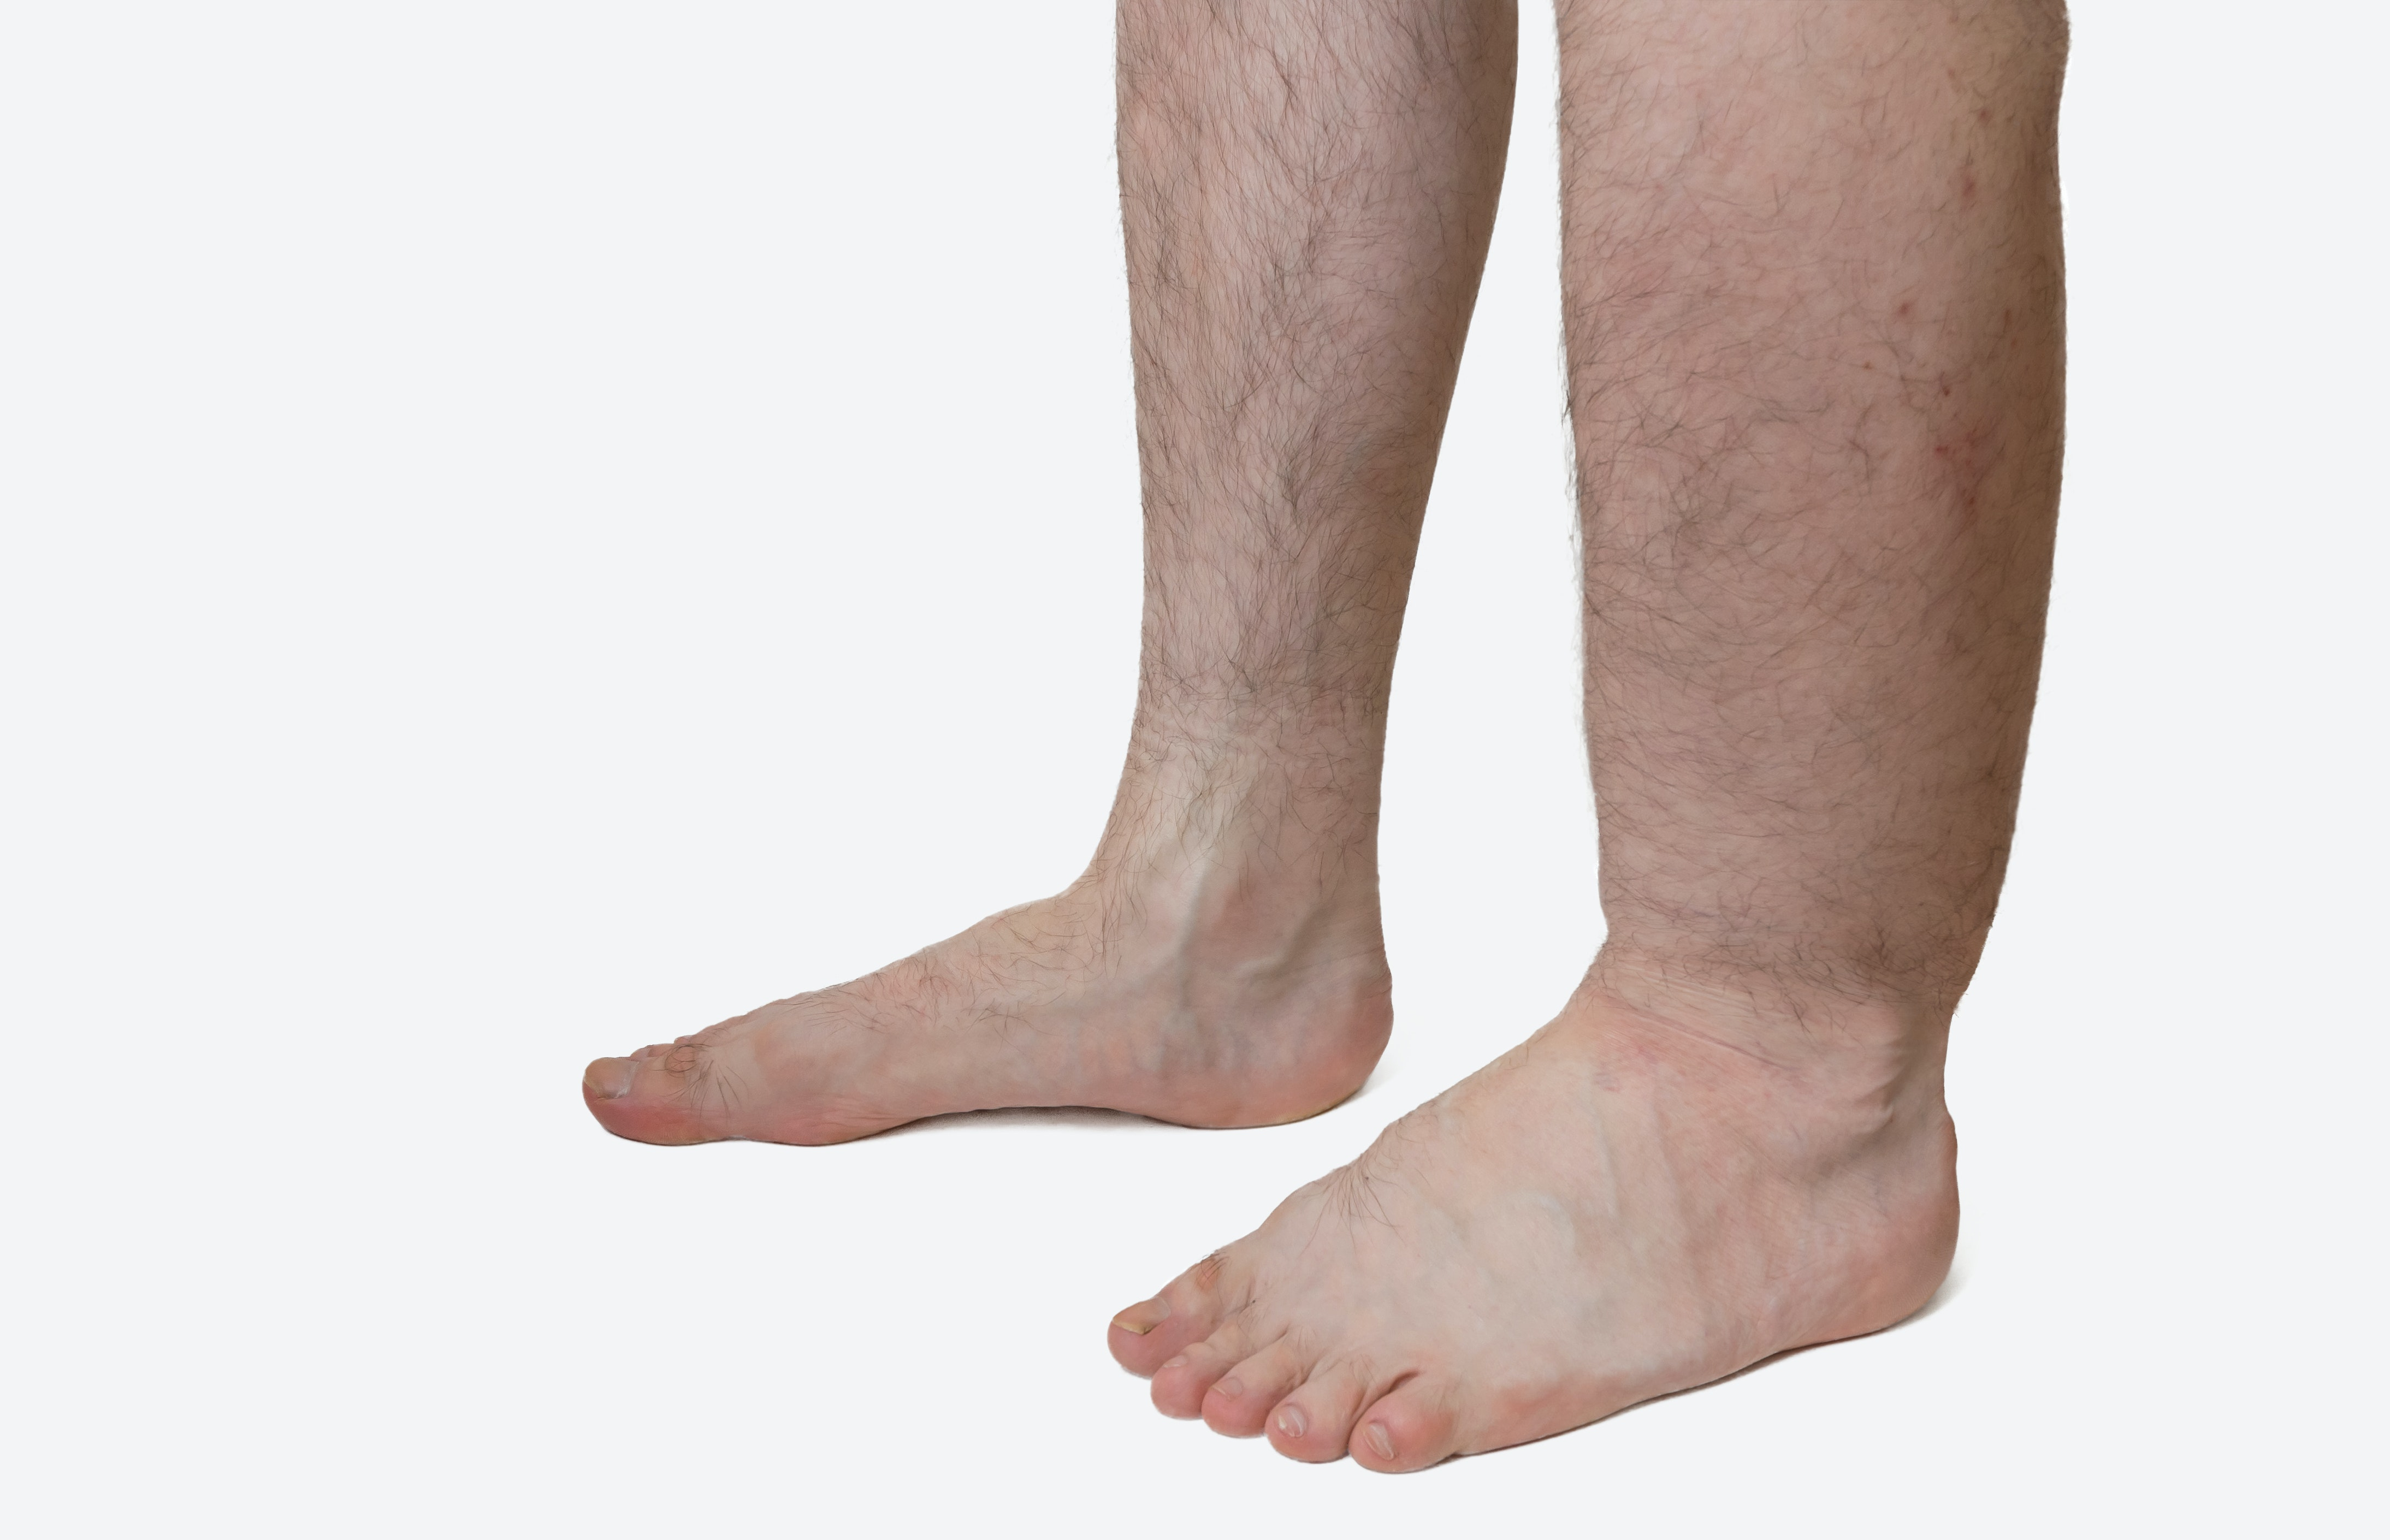 An image depicting a person suffering from swelling in one lower leg symptoms